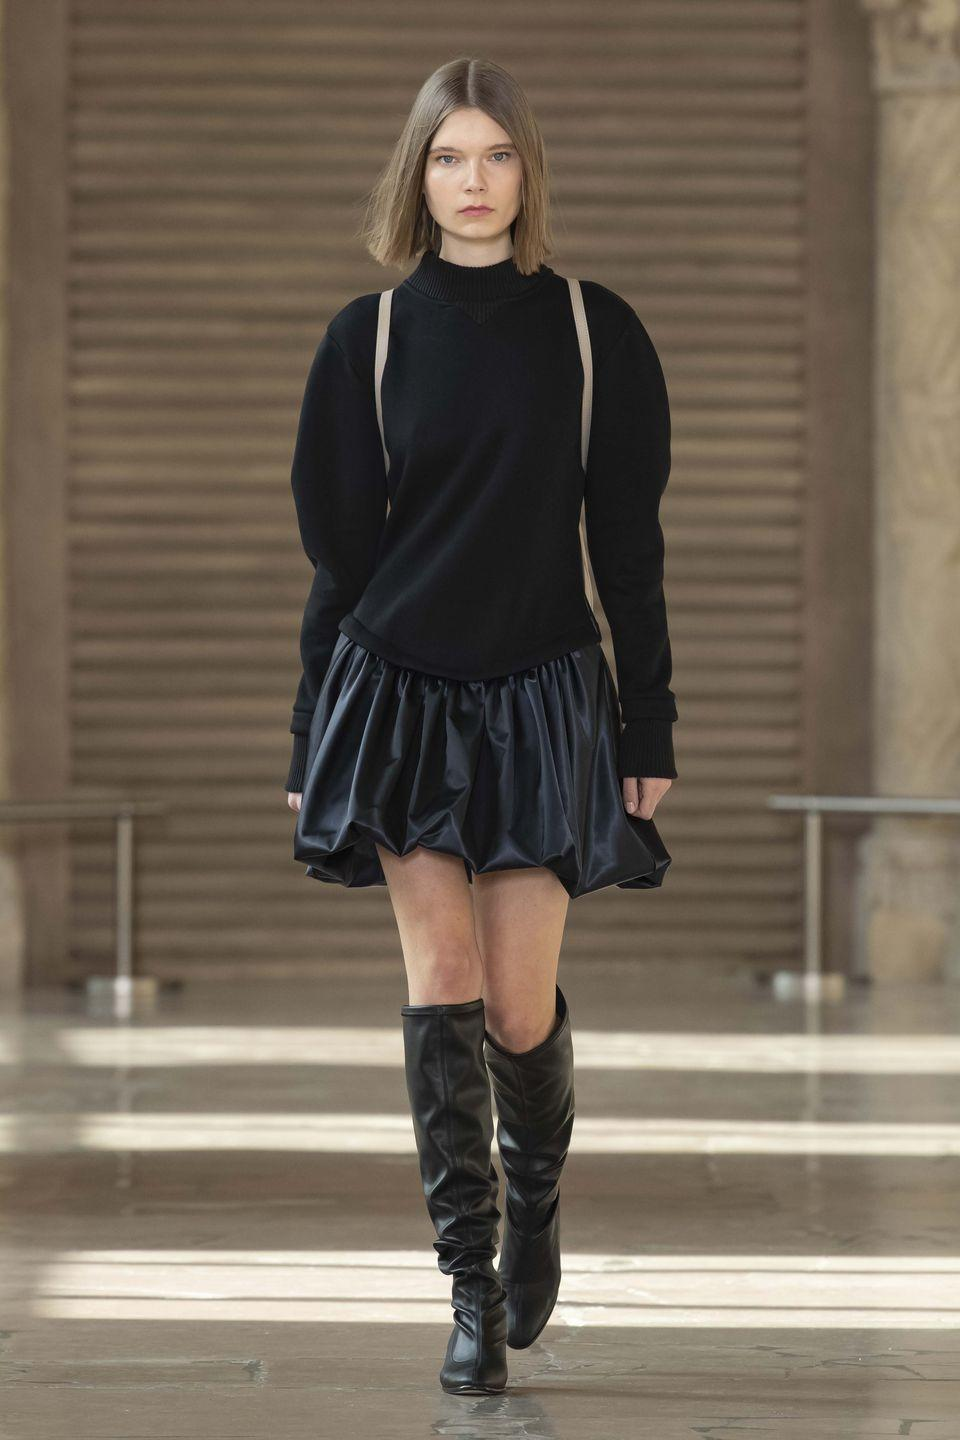 "<p>Parisian accessories brand Elleme revealed its first ready-to-wear collection for autumn/winter 2021, which was all about casual elegance.</p><p>""AW21 was conceived in the middle of the first lockdown,"" creative director Jingjing Fan said. ""We had plenty of time on our hands to take a step back and think about what is important in life. With families and individuals choosing to leave their lives in the big city and go to the countryside to explore true nature. This collection has been inspired to create the perfect look for an easy walk in the forest, mountains or simply by your country house. Casual elegance is the essence of our first ready to wear collection.'""</p>"